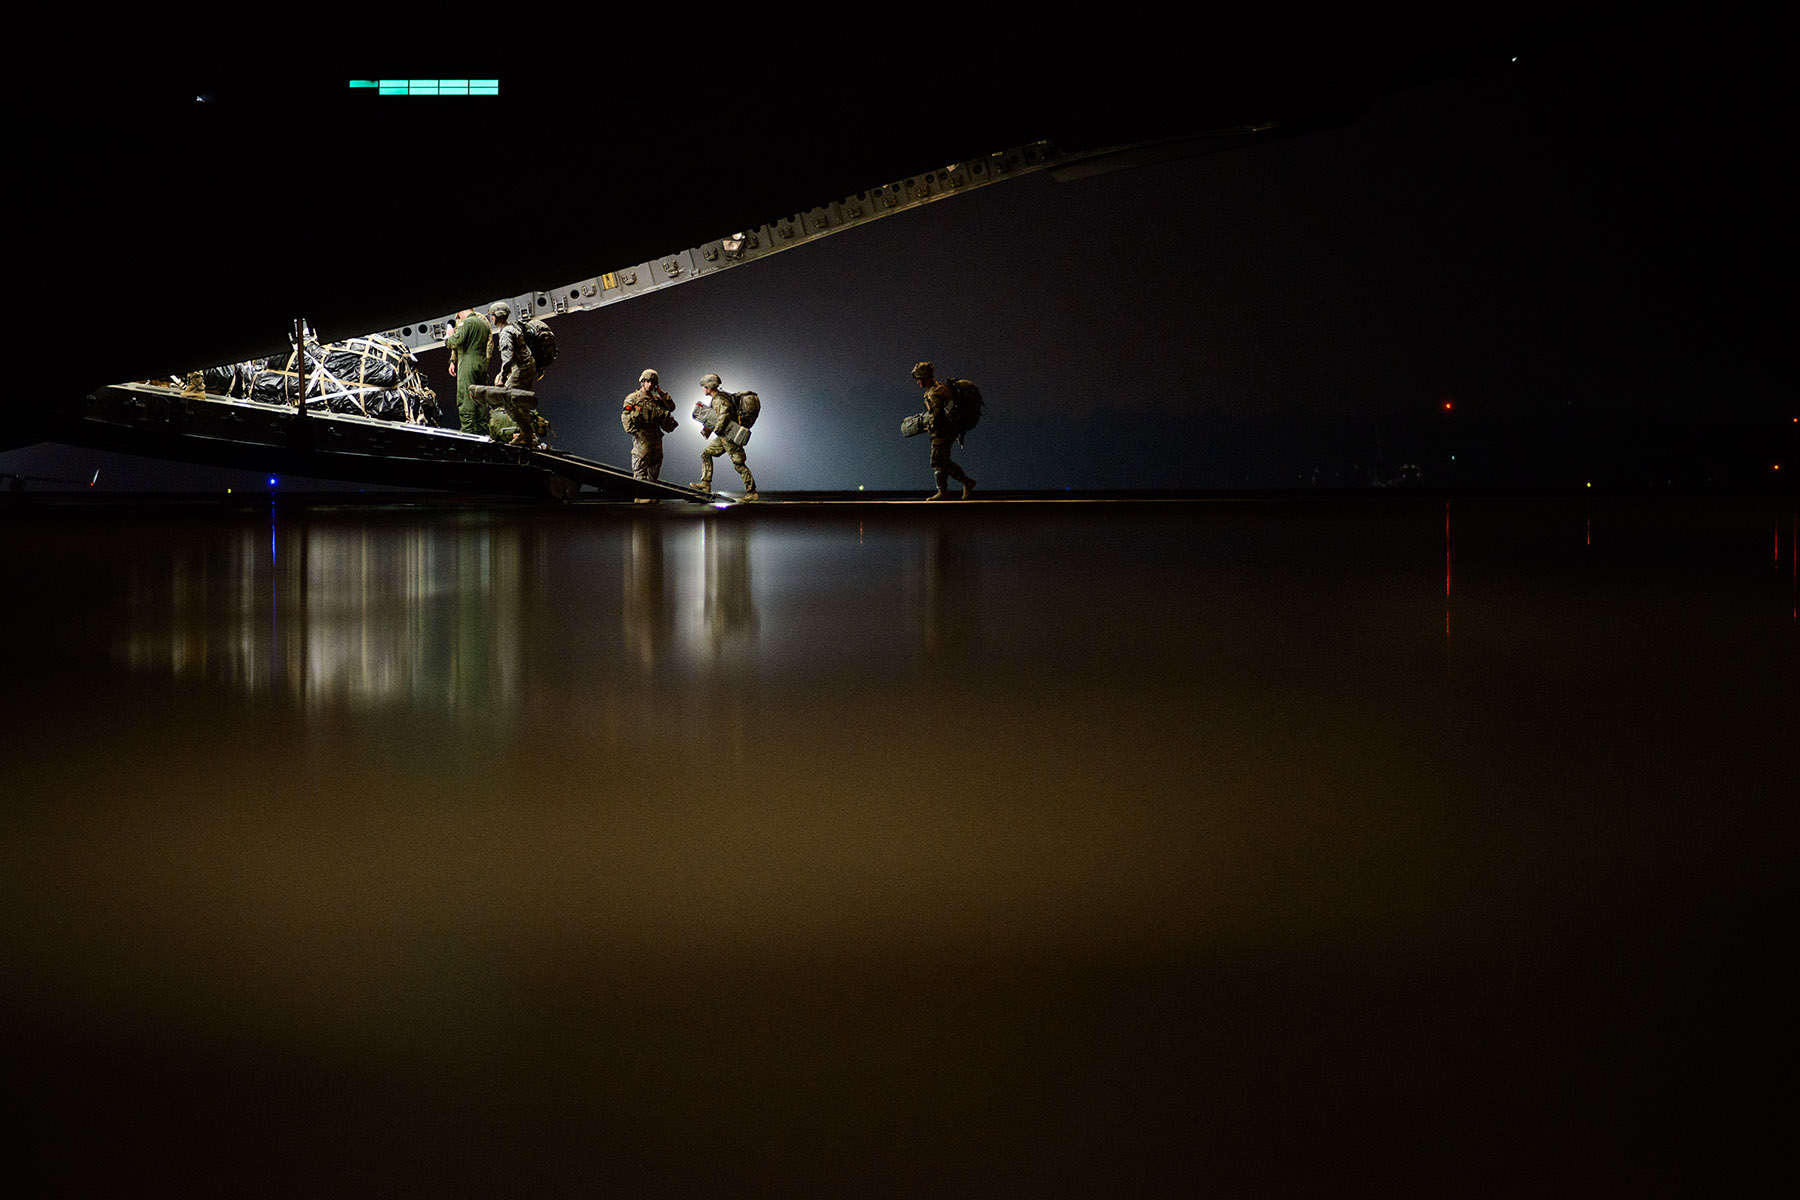 First Place | Multiple PhotosAndrew Craft, The Fayetteville Observer2nd Brigade Combat Team paratroopers board a C-17 headed for Zaragoza, Spain, Tuesday, Nov. 3, 2015, where they will jump in as part of Operation Trident Juncture 15. In support of Operations Trident Juncture 15 and Ultimate Reach 16, over 500 Paratroopers from the Division's 2nd Brigade Combat Team deployed from Pope Army Airfield, conducted in-flight rigging and executed a Joint Forcible Entry exercise in Zaragoza, Spain.